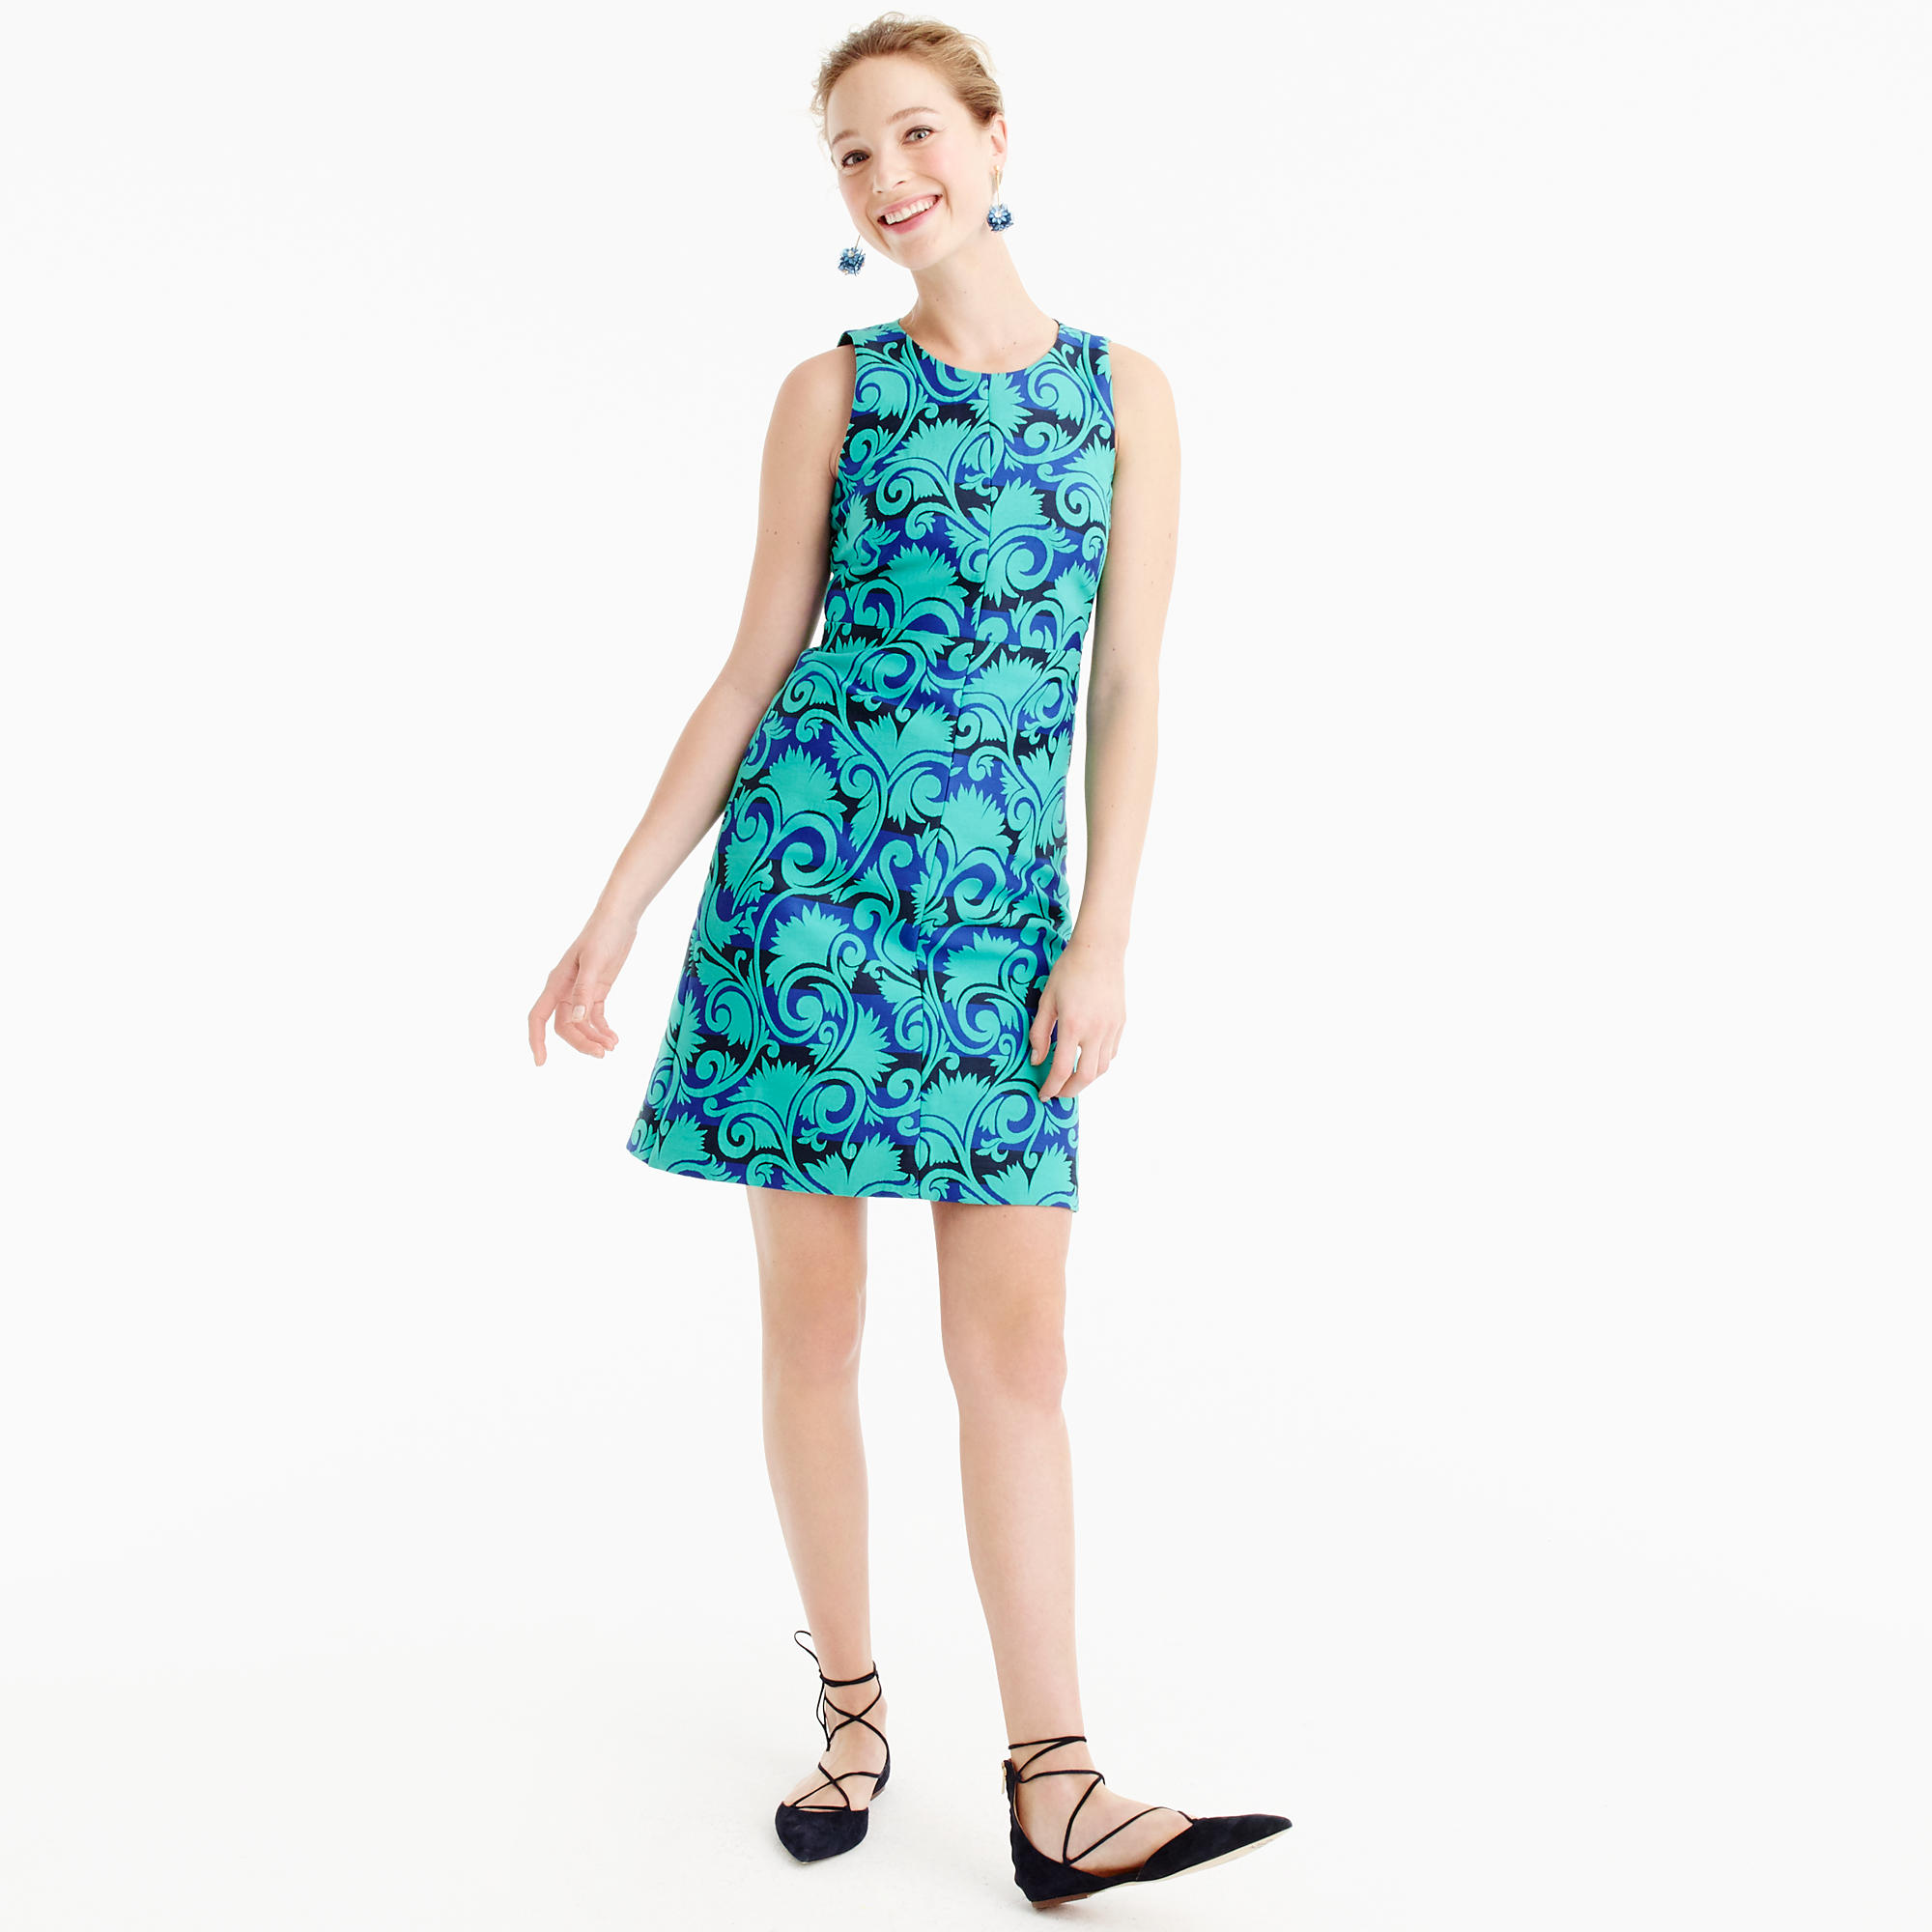 Women&39s Tall Clothing - Women&39s Tall Suits Dresses &amp Gowns ...